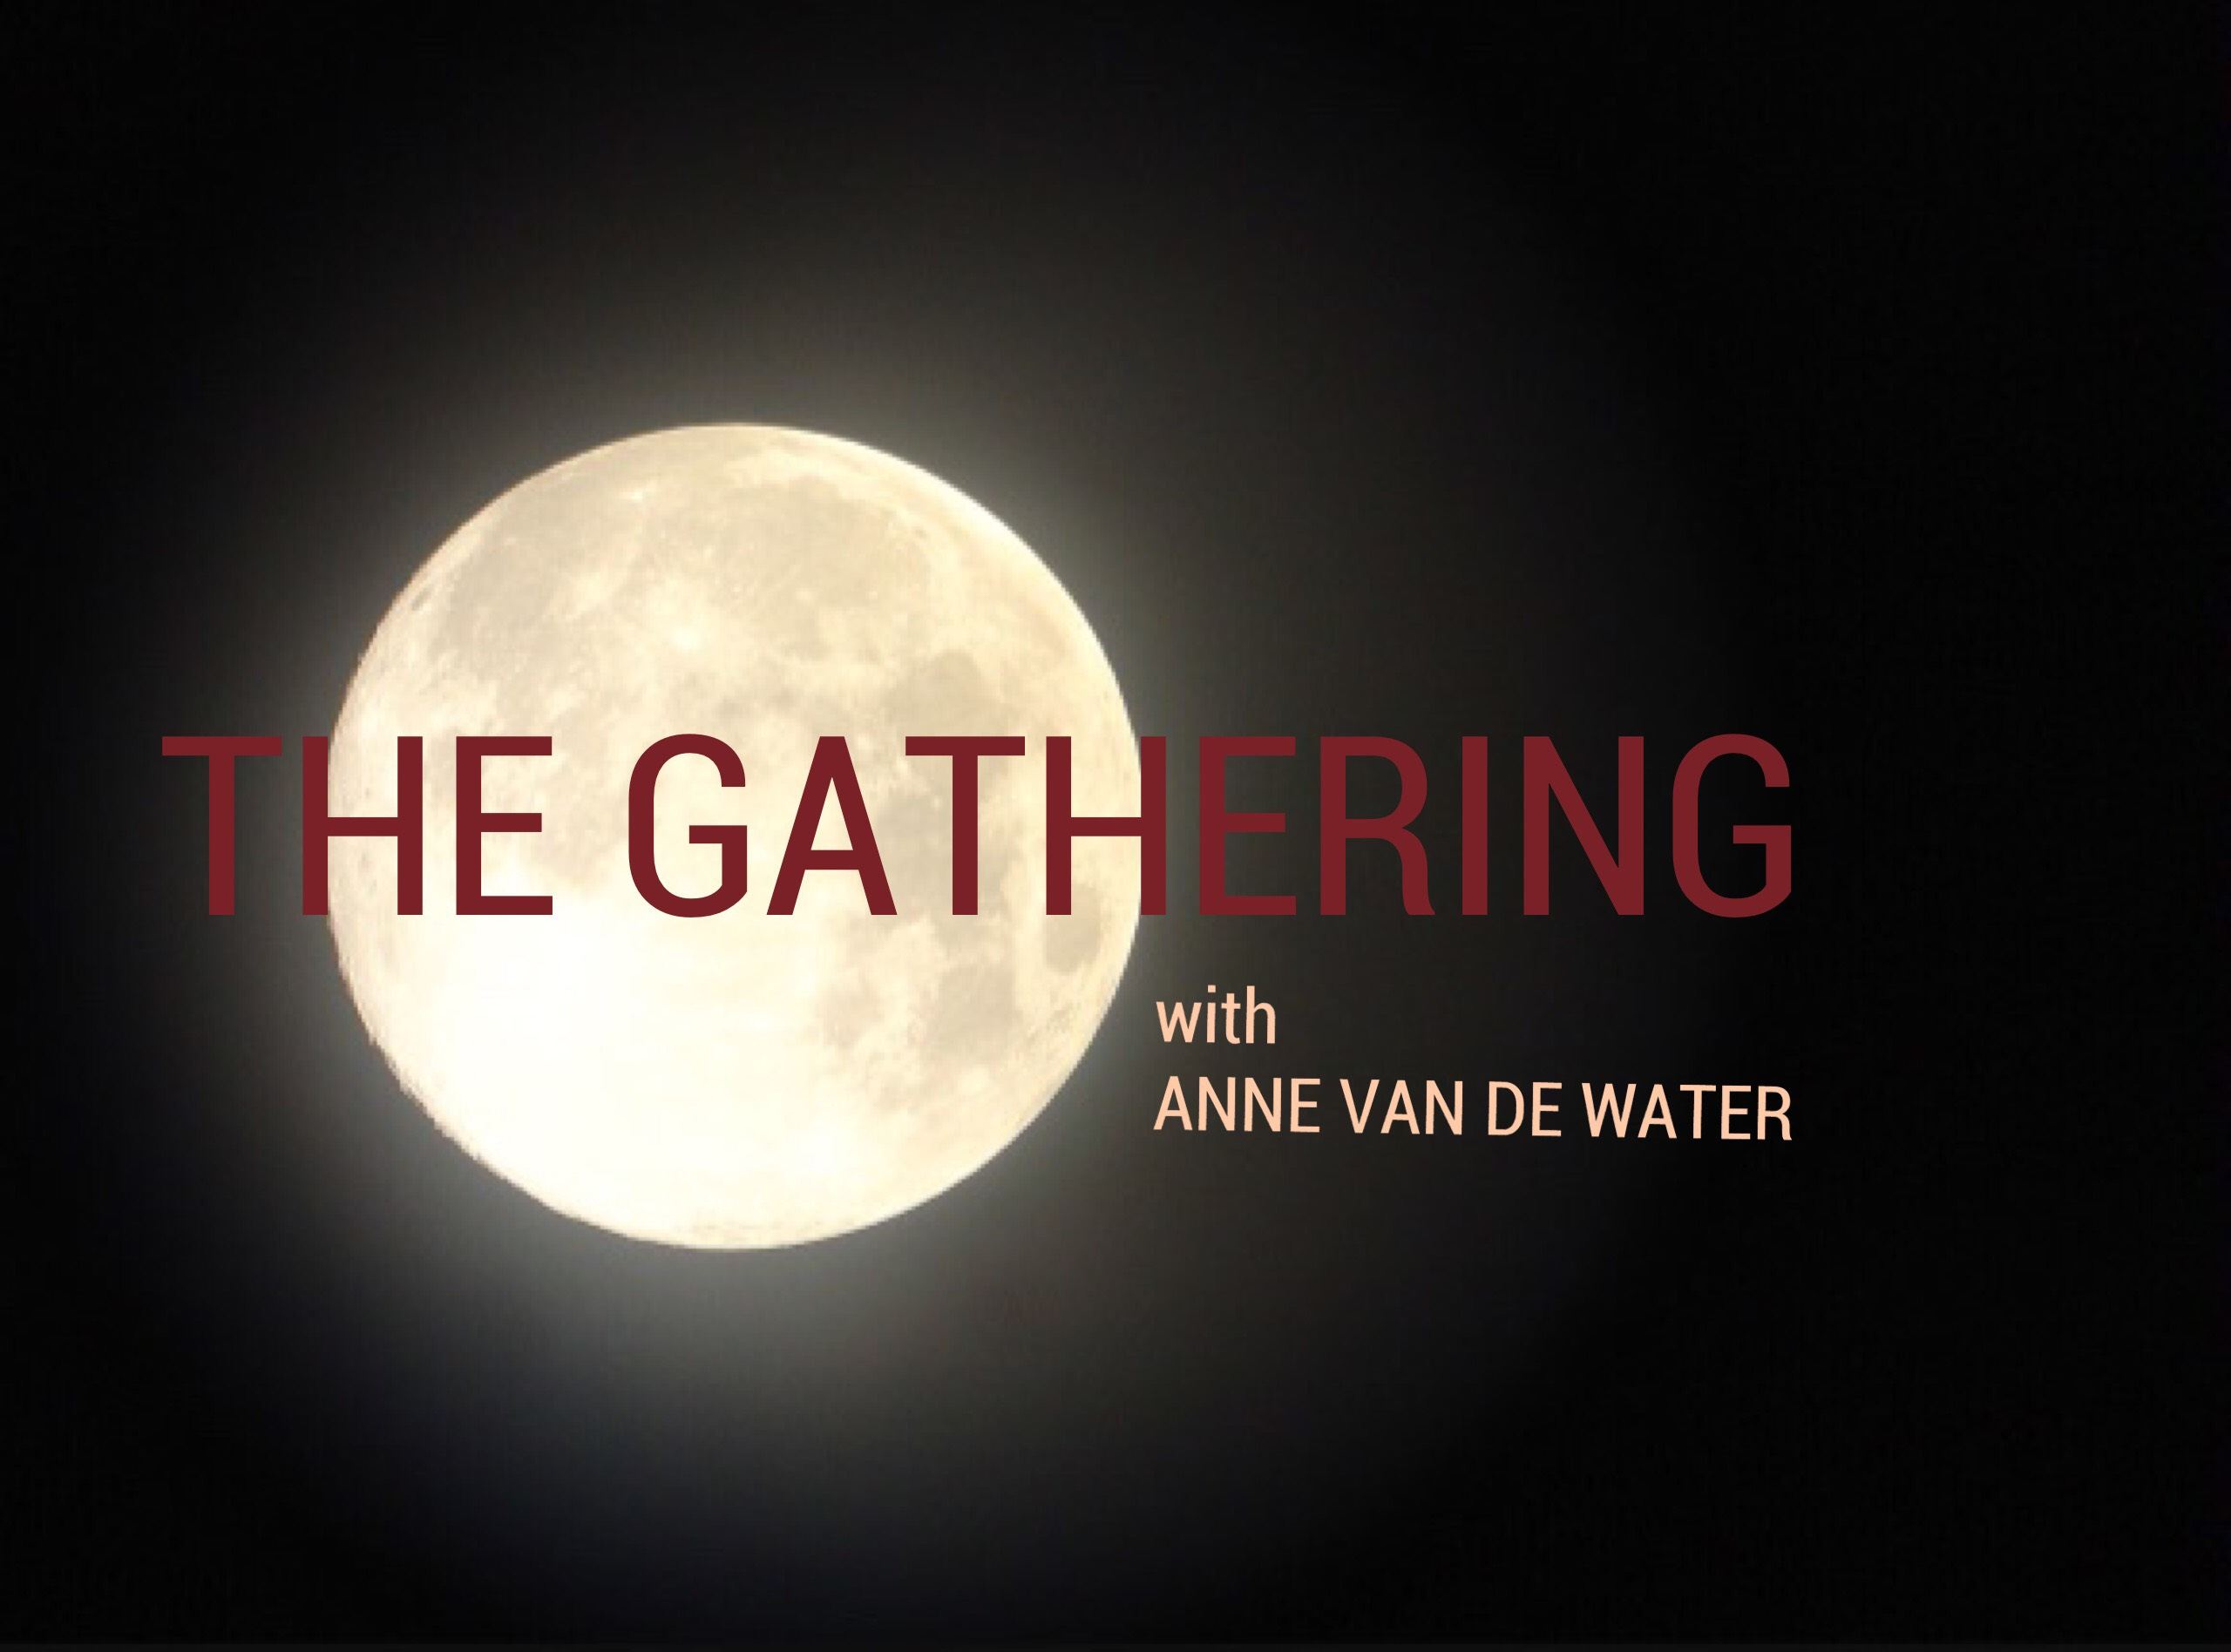 THE GATHERING - Full Moon in Libra